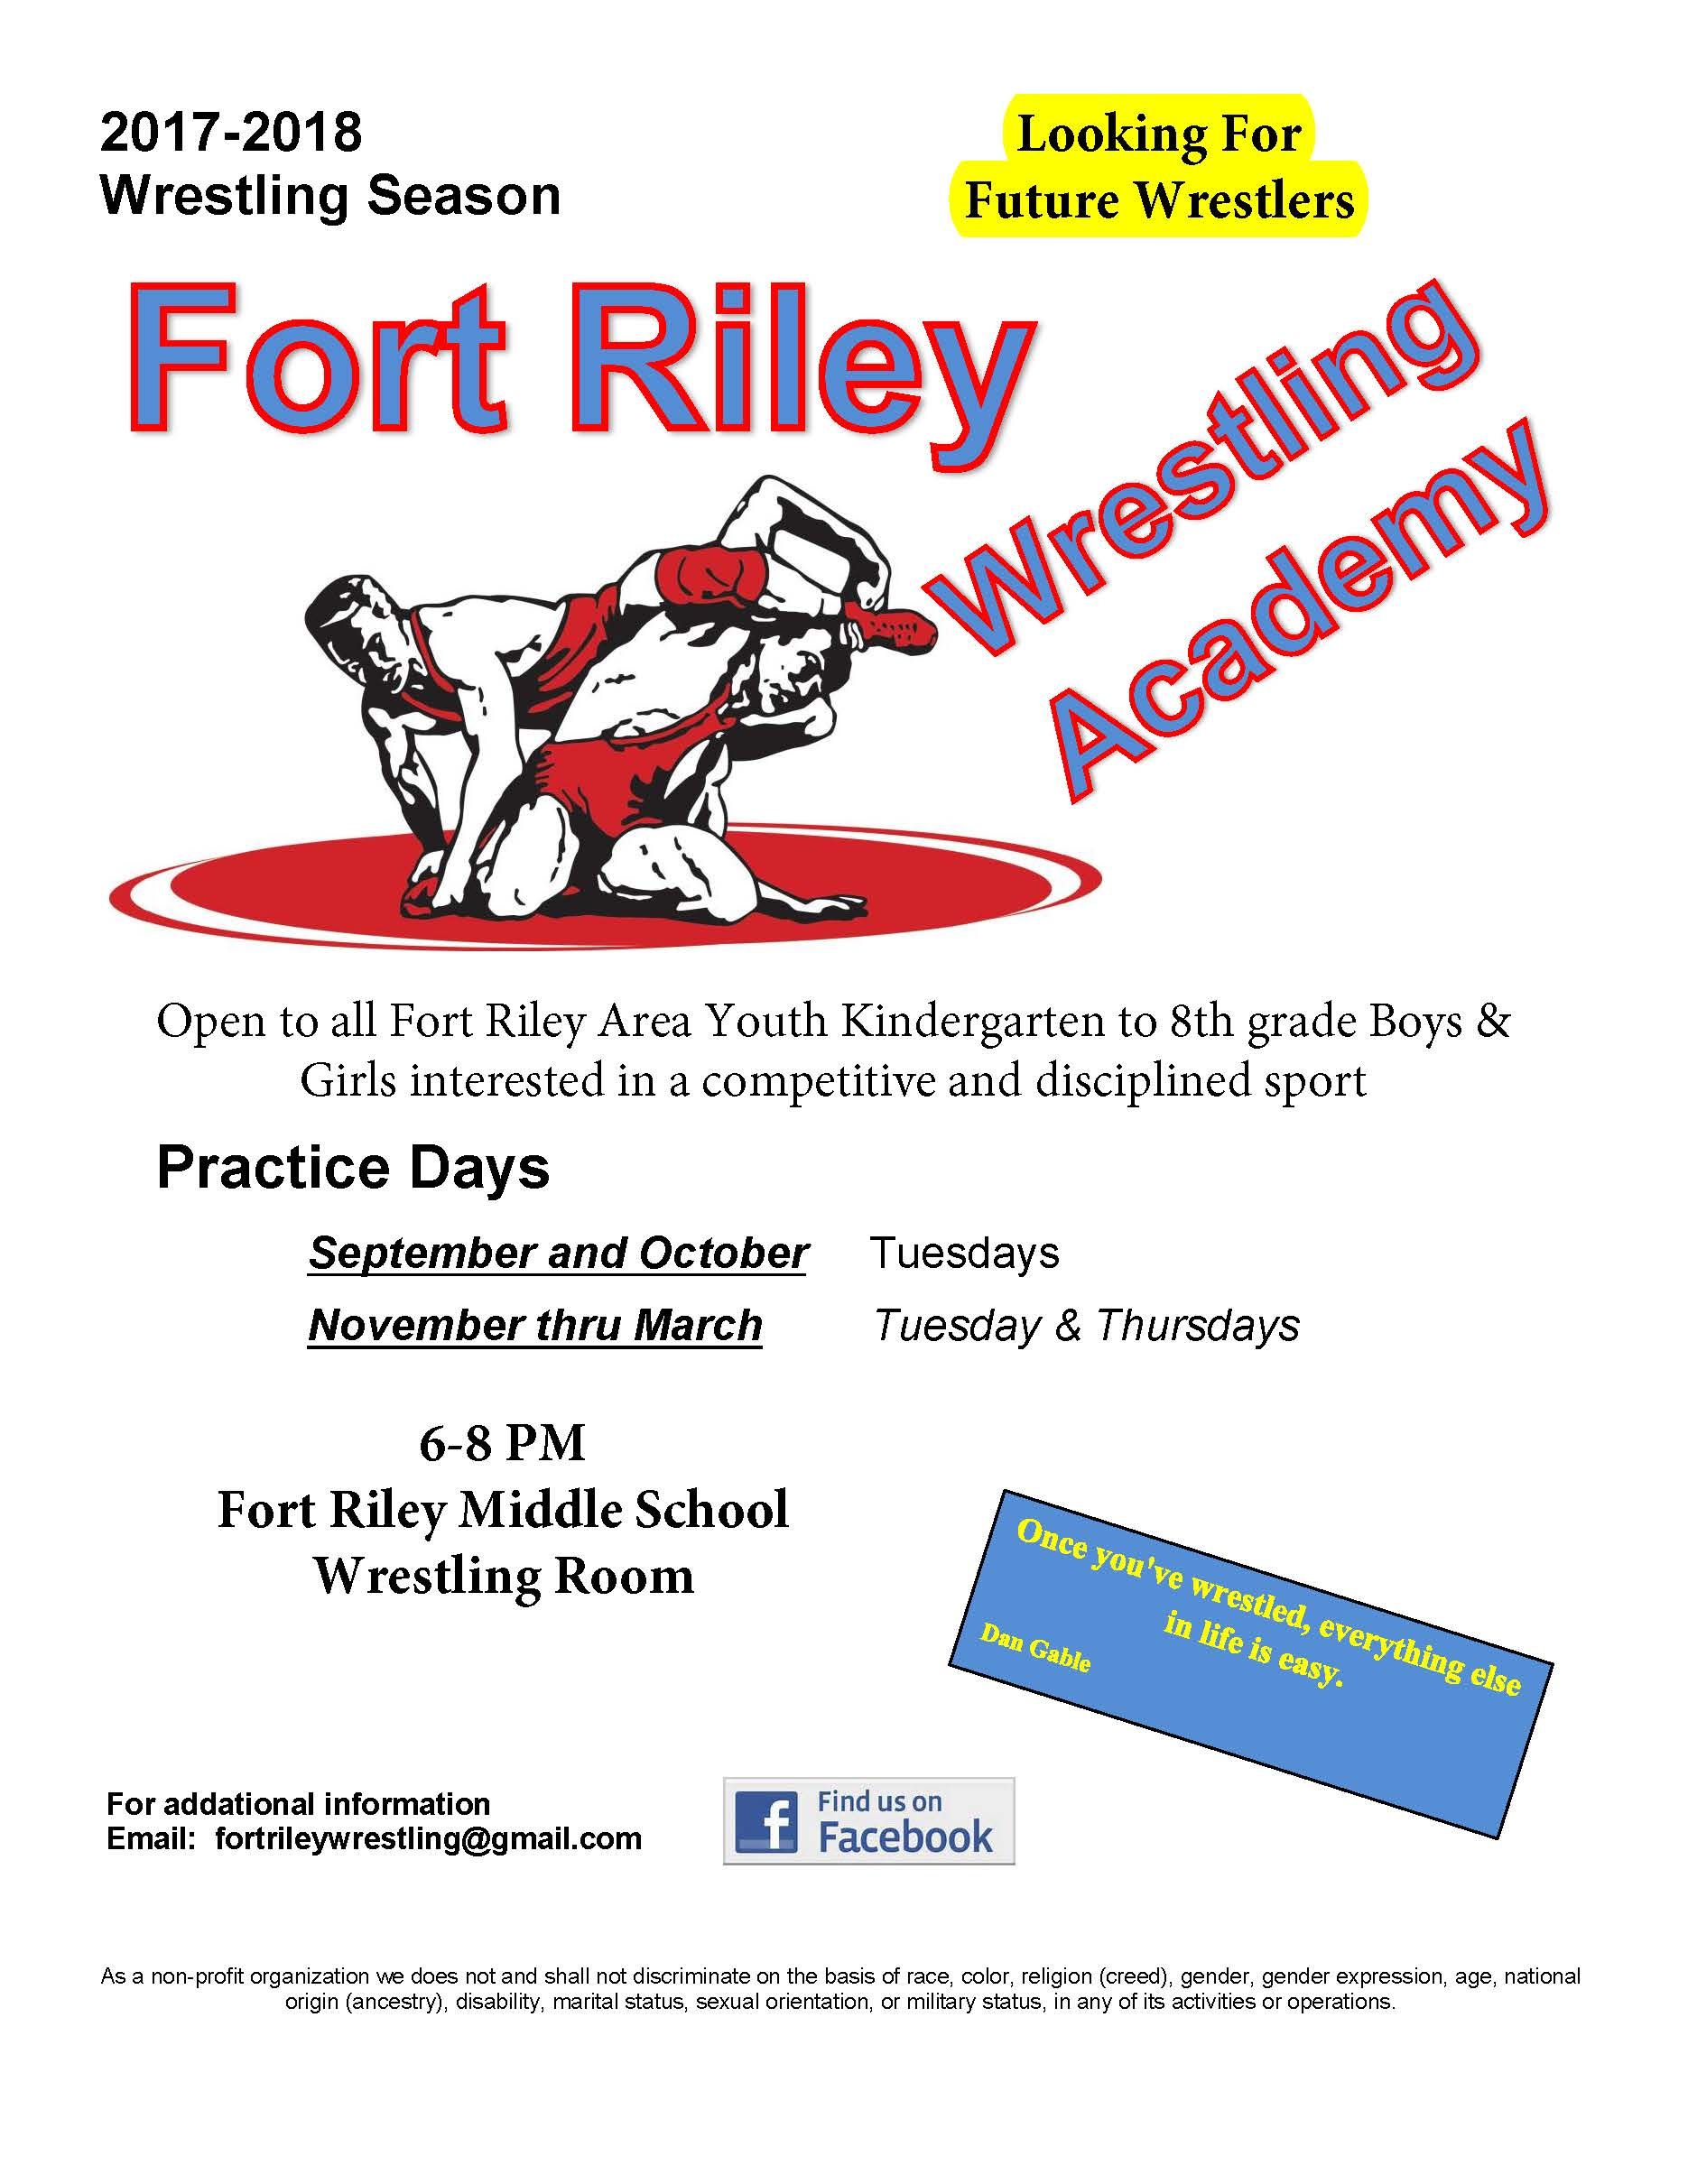 Fort Riley Wrestling Academy Flyer